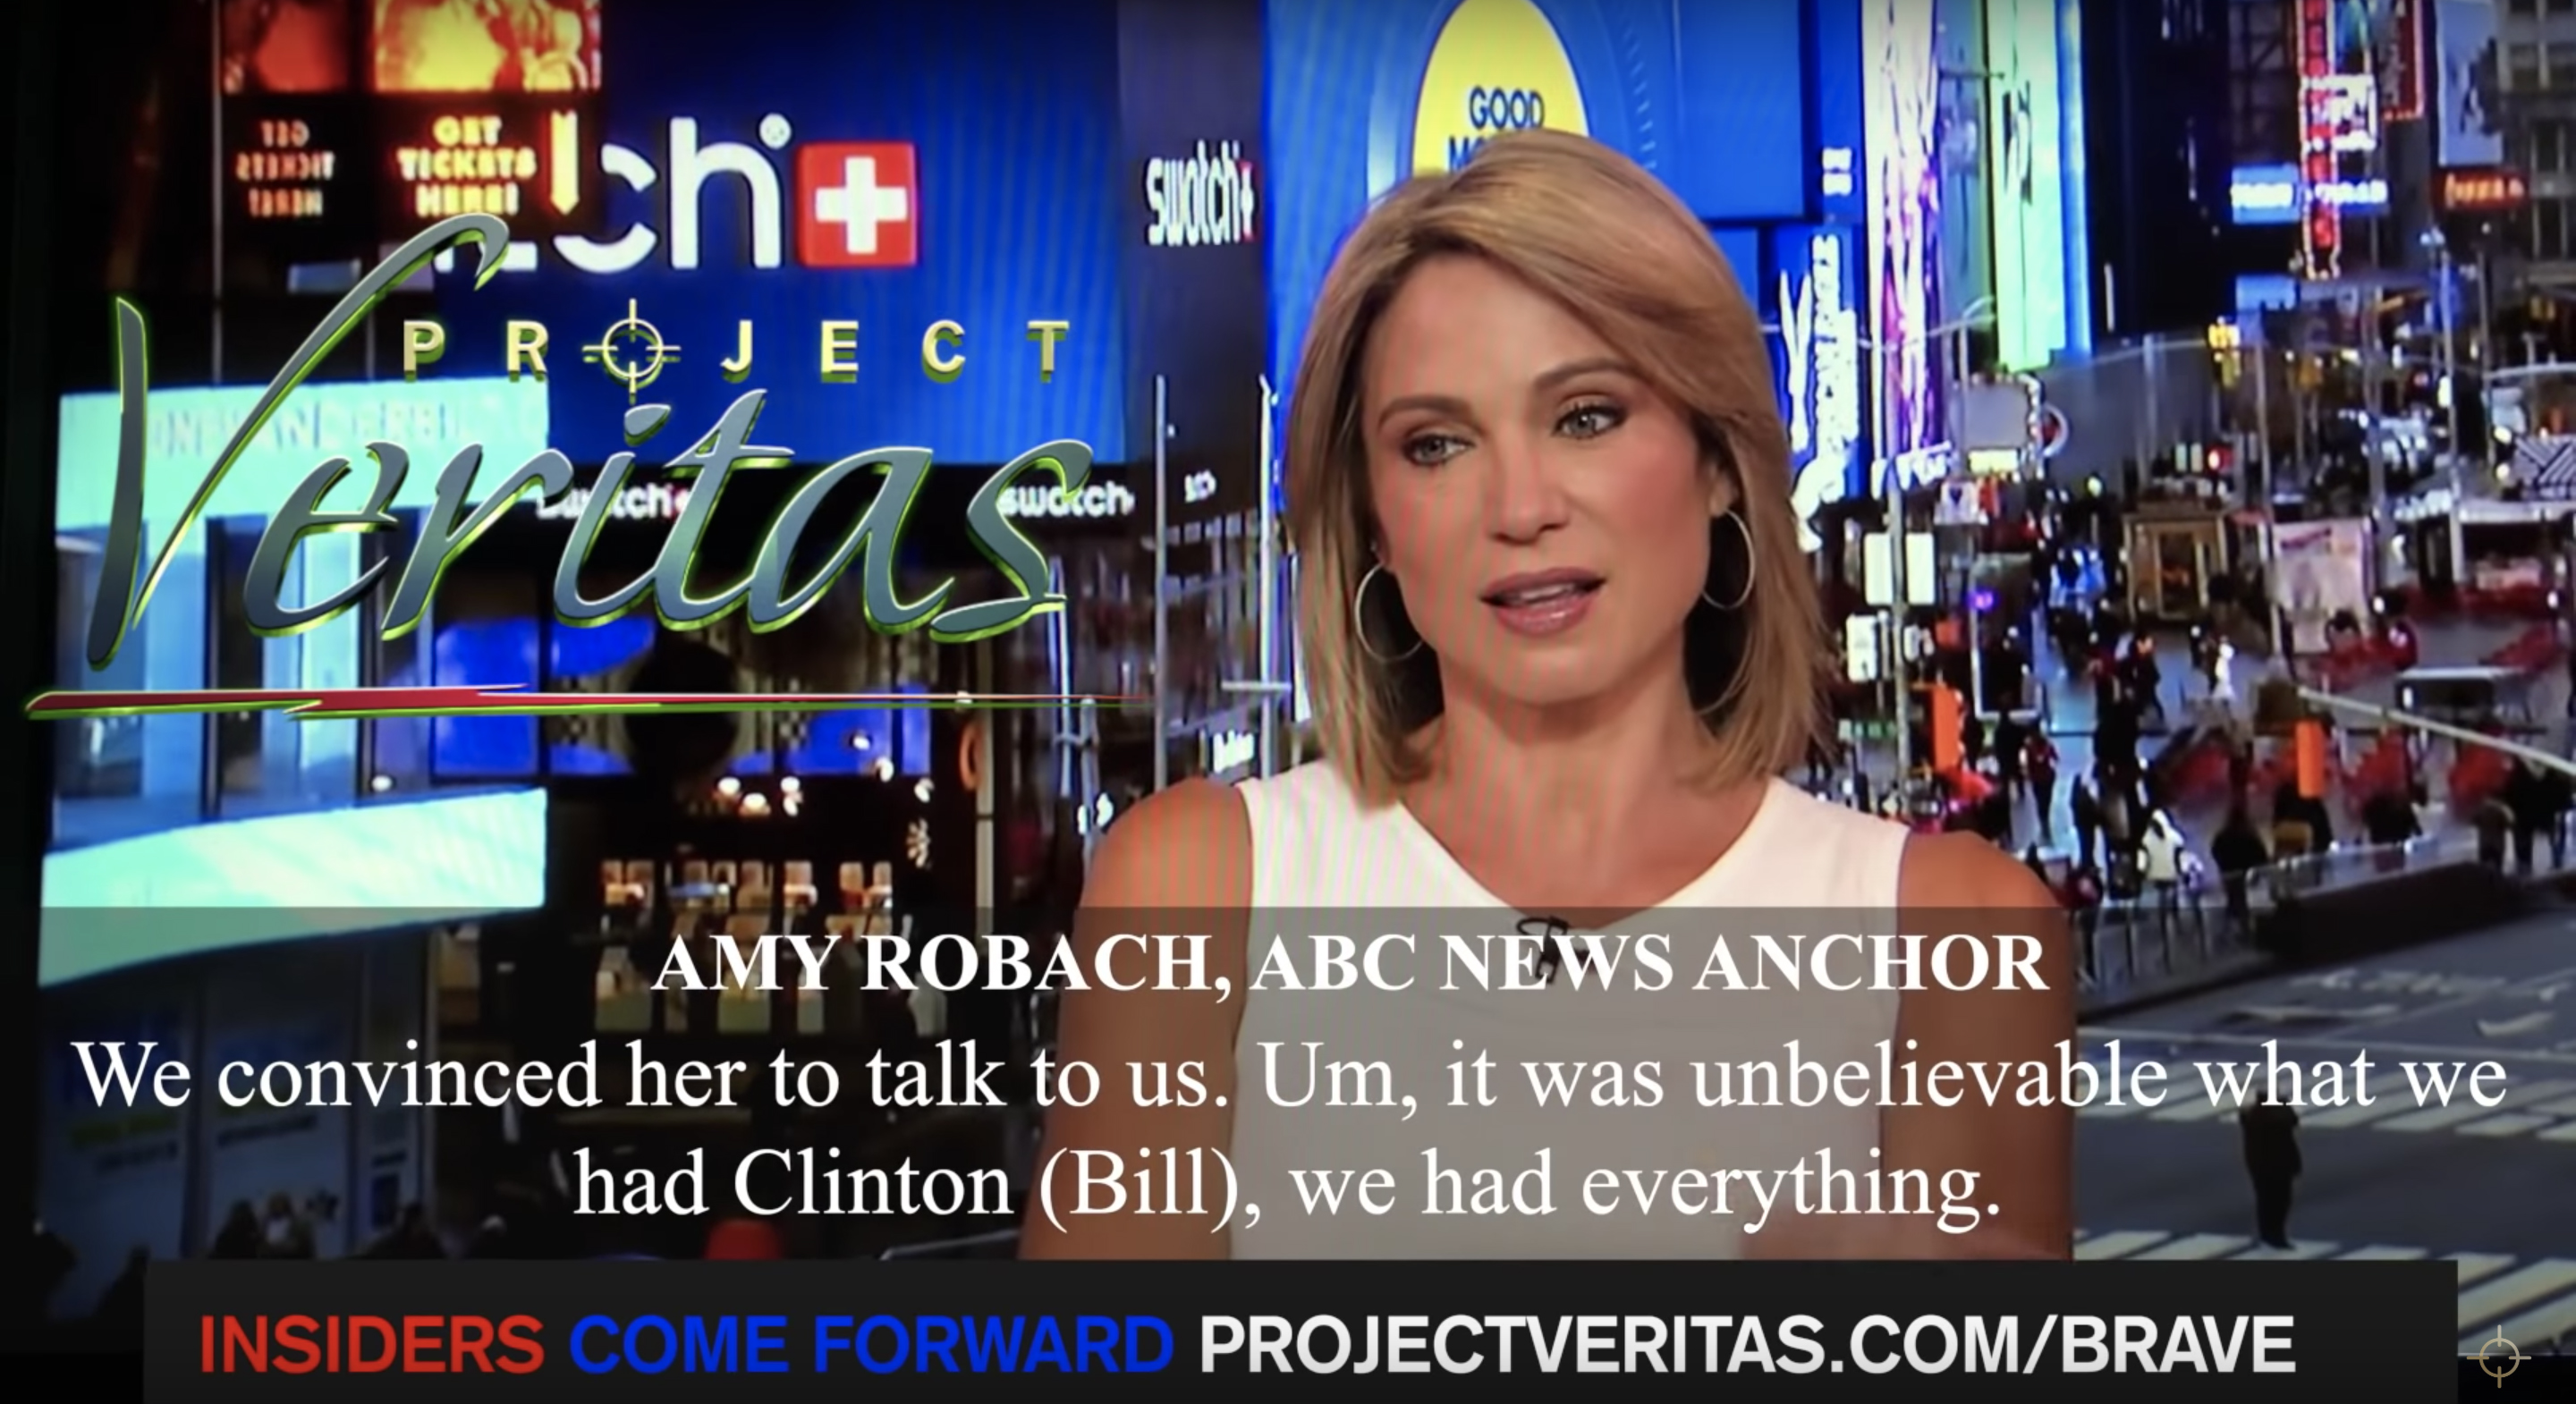 ABC's Amy Robach claims on hot mic that the network killed Epstein story 3 years ago, in a video released by Project Veritas. (Screenshot/Project Veritas)